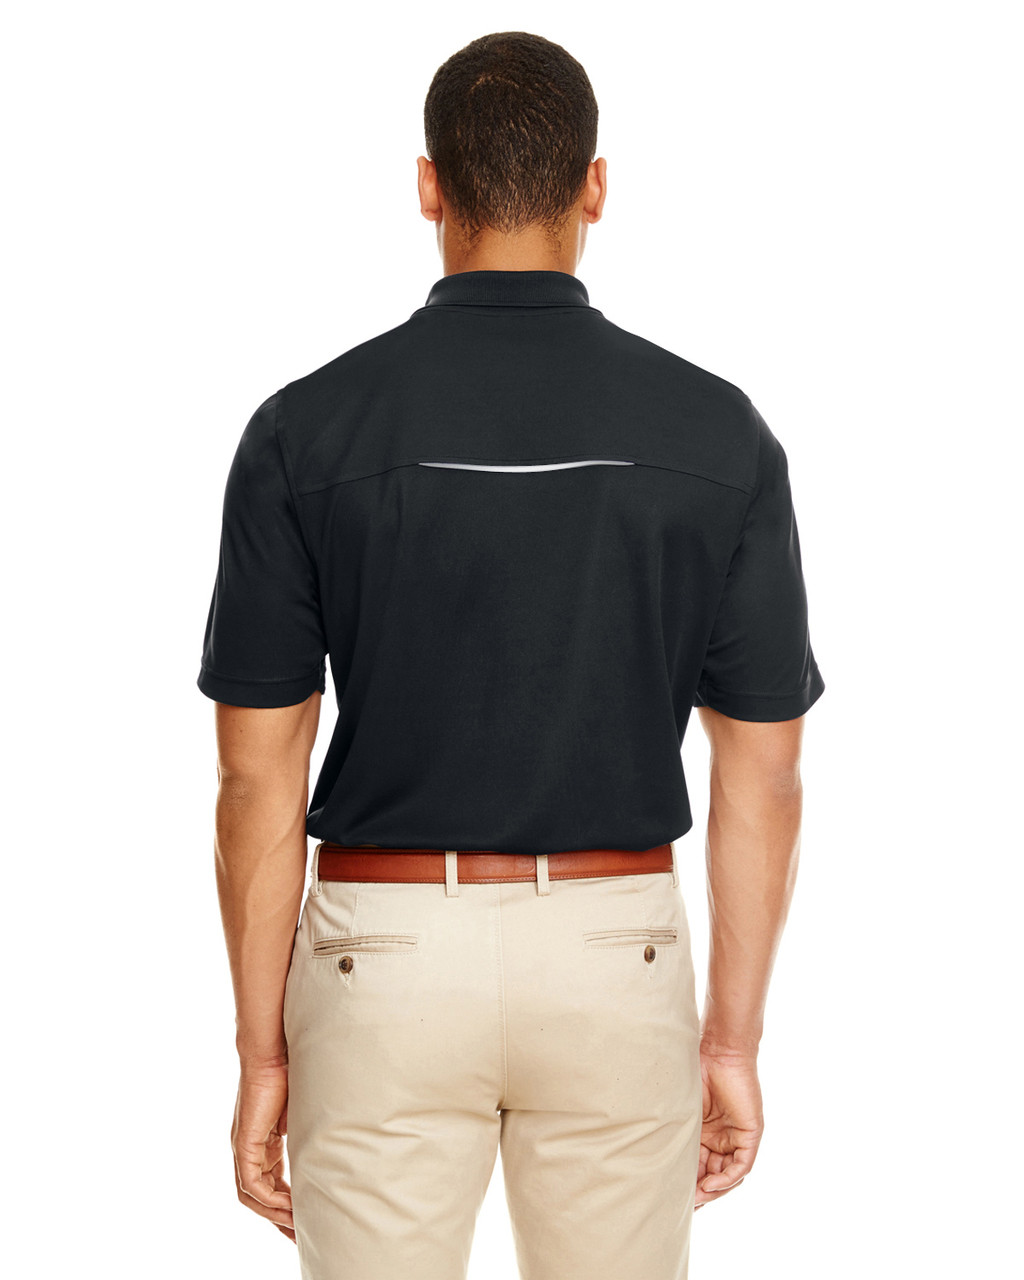 Black - 88181R Ash City - Core 365 Men's Radiant Performance Piqué Polo Shirt with Reflective Piping | Blankclothing.ca